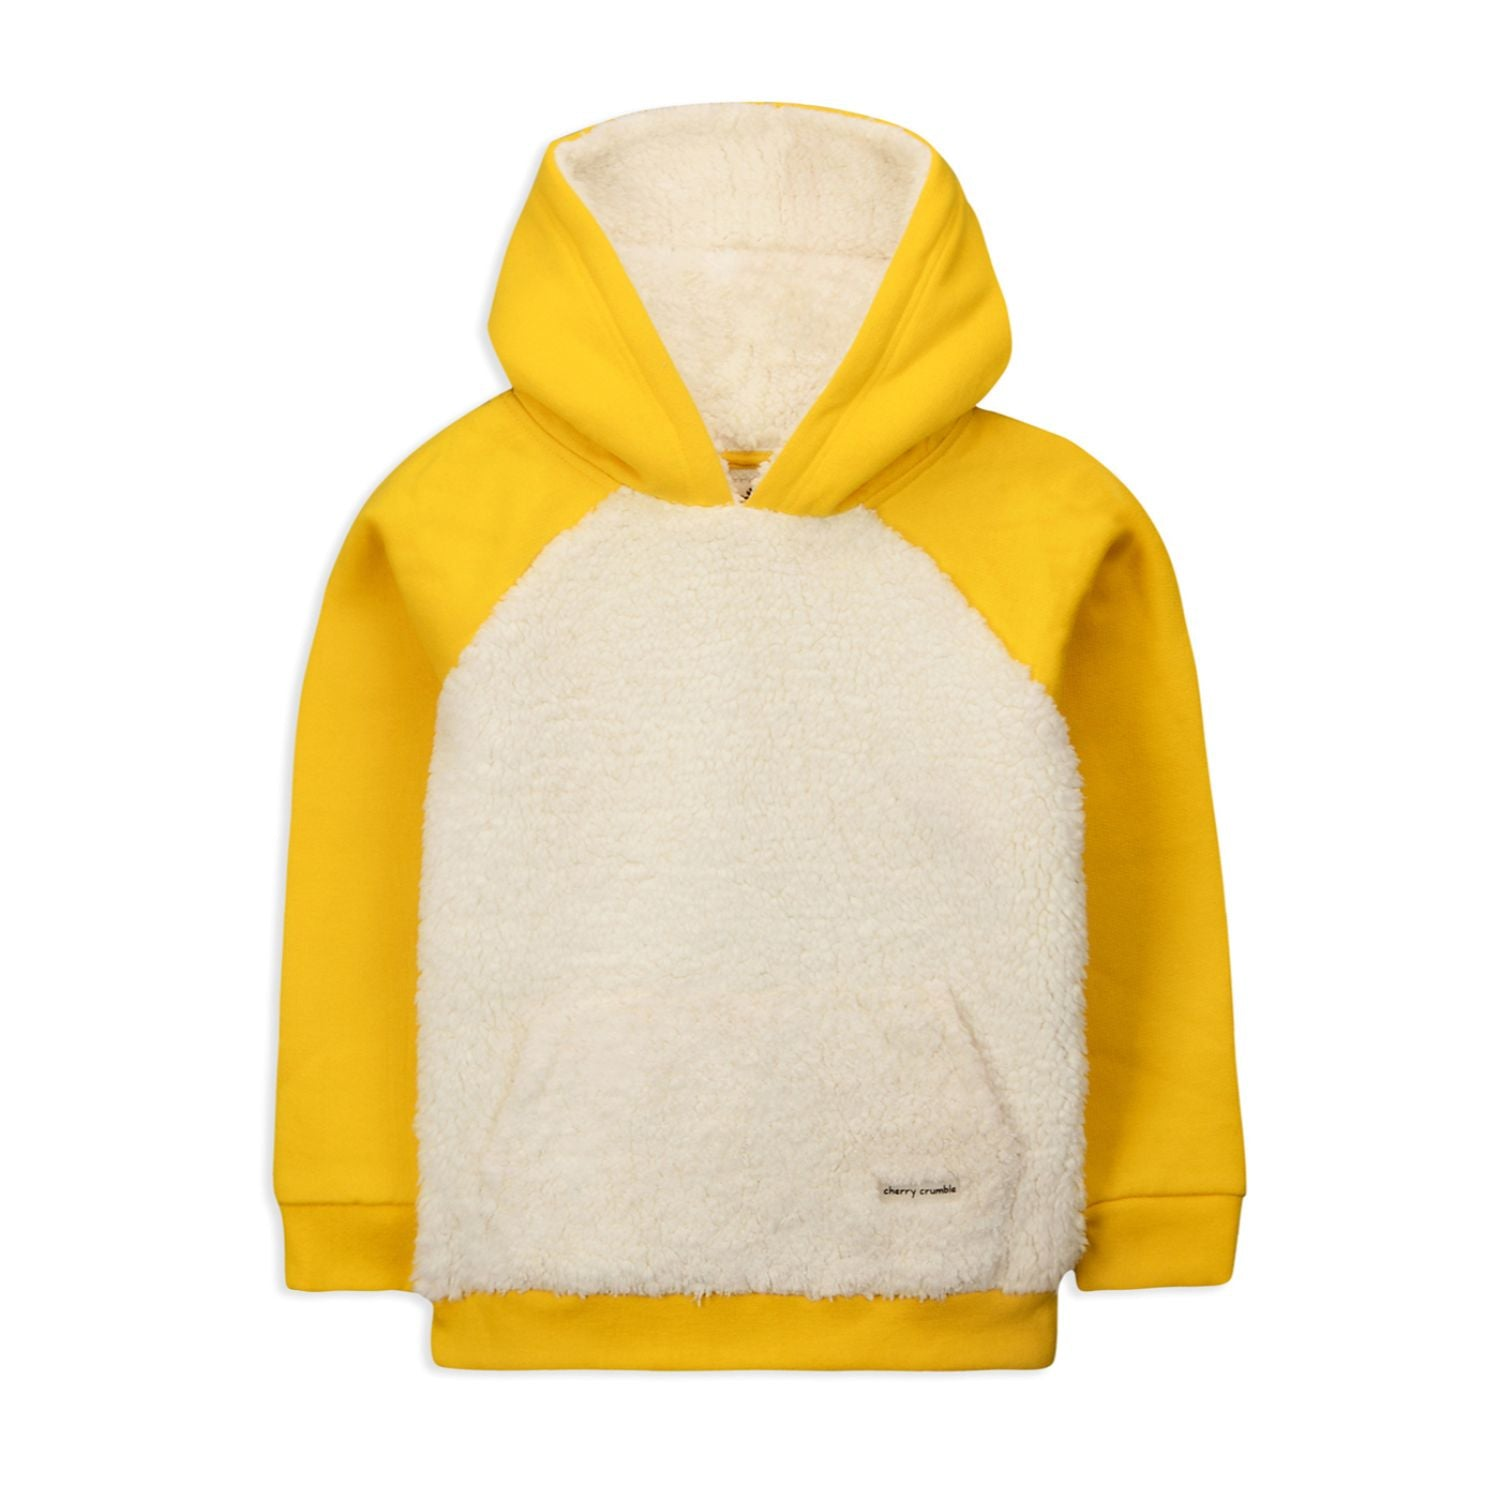 Sherpa Cosy Sweatshirt for kids